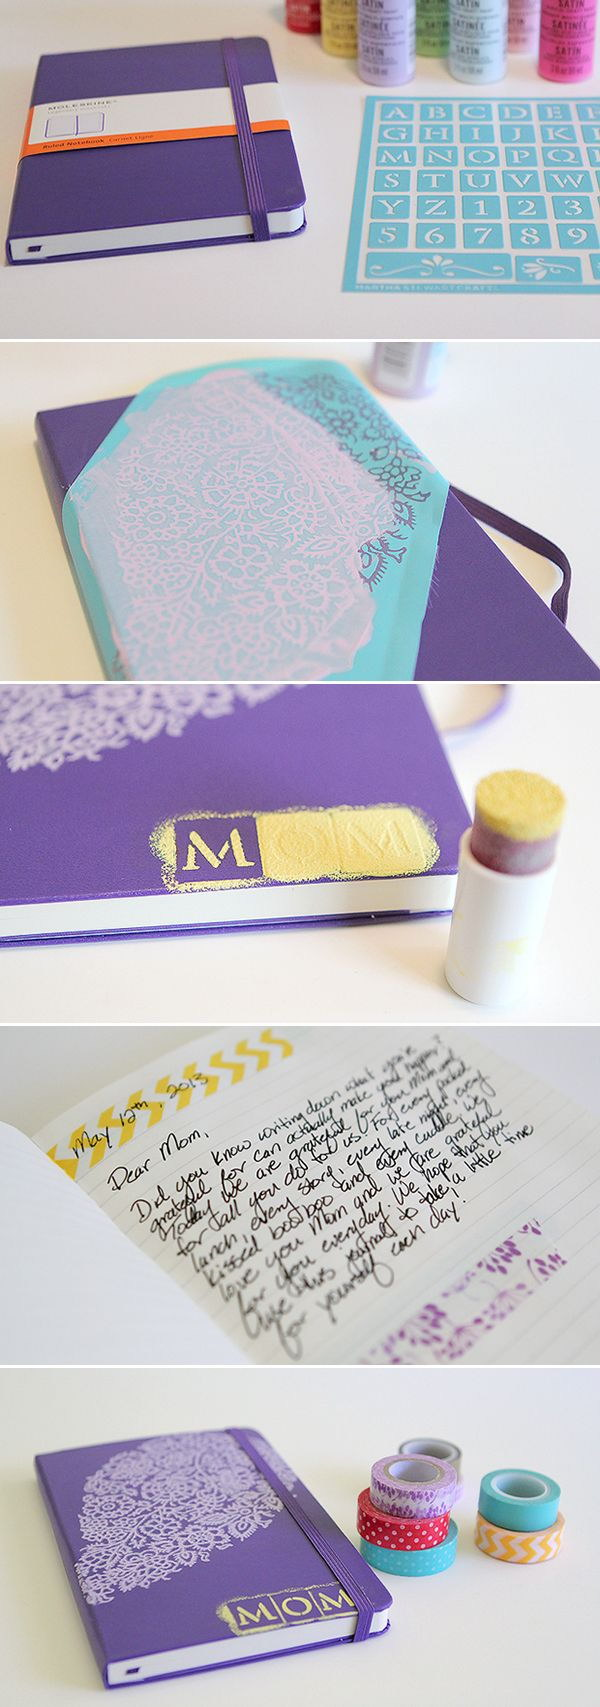 DIY Gratitude Journal. Make a gratitude journal with fine crafty touch and decoration for Mother's Day. Super easy to make and will surely bring some smile on your mom's face on her special day!